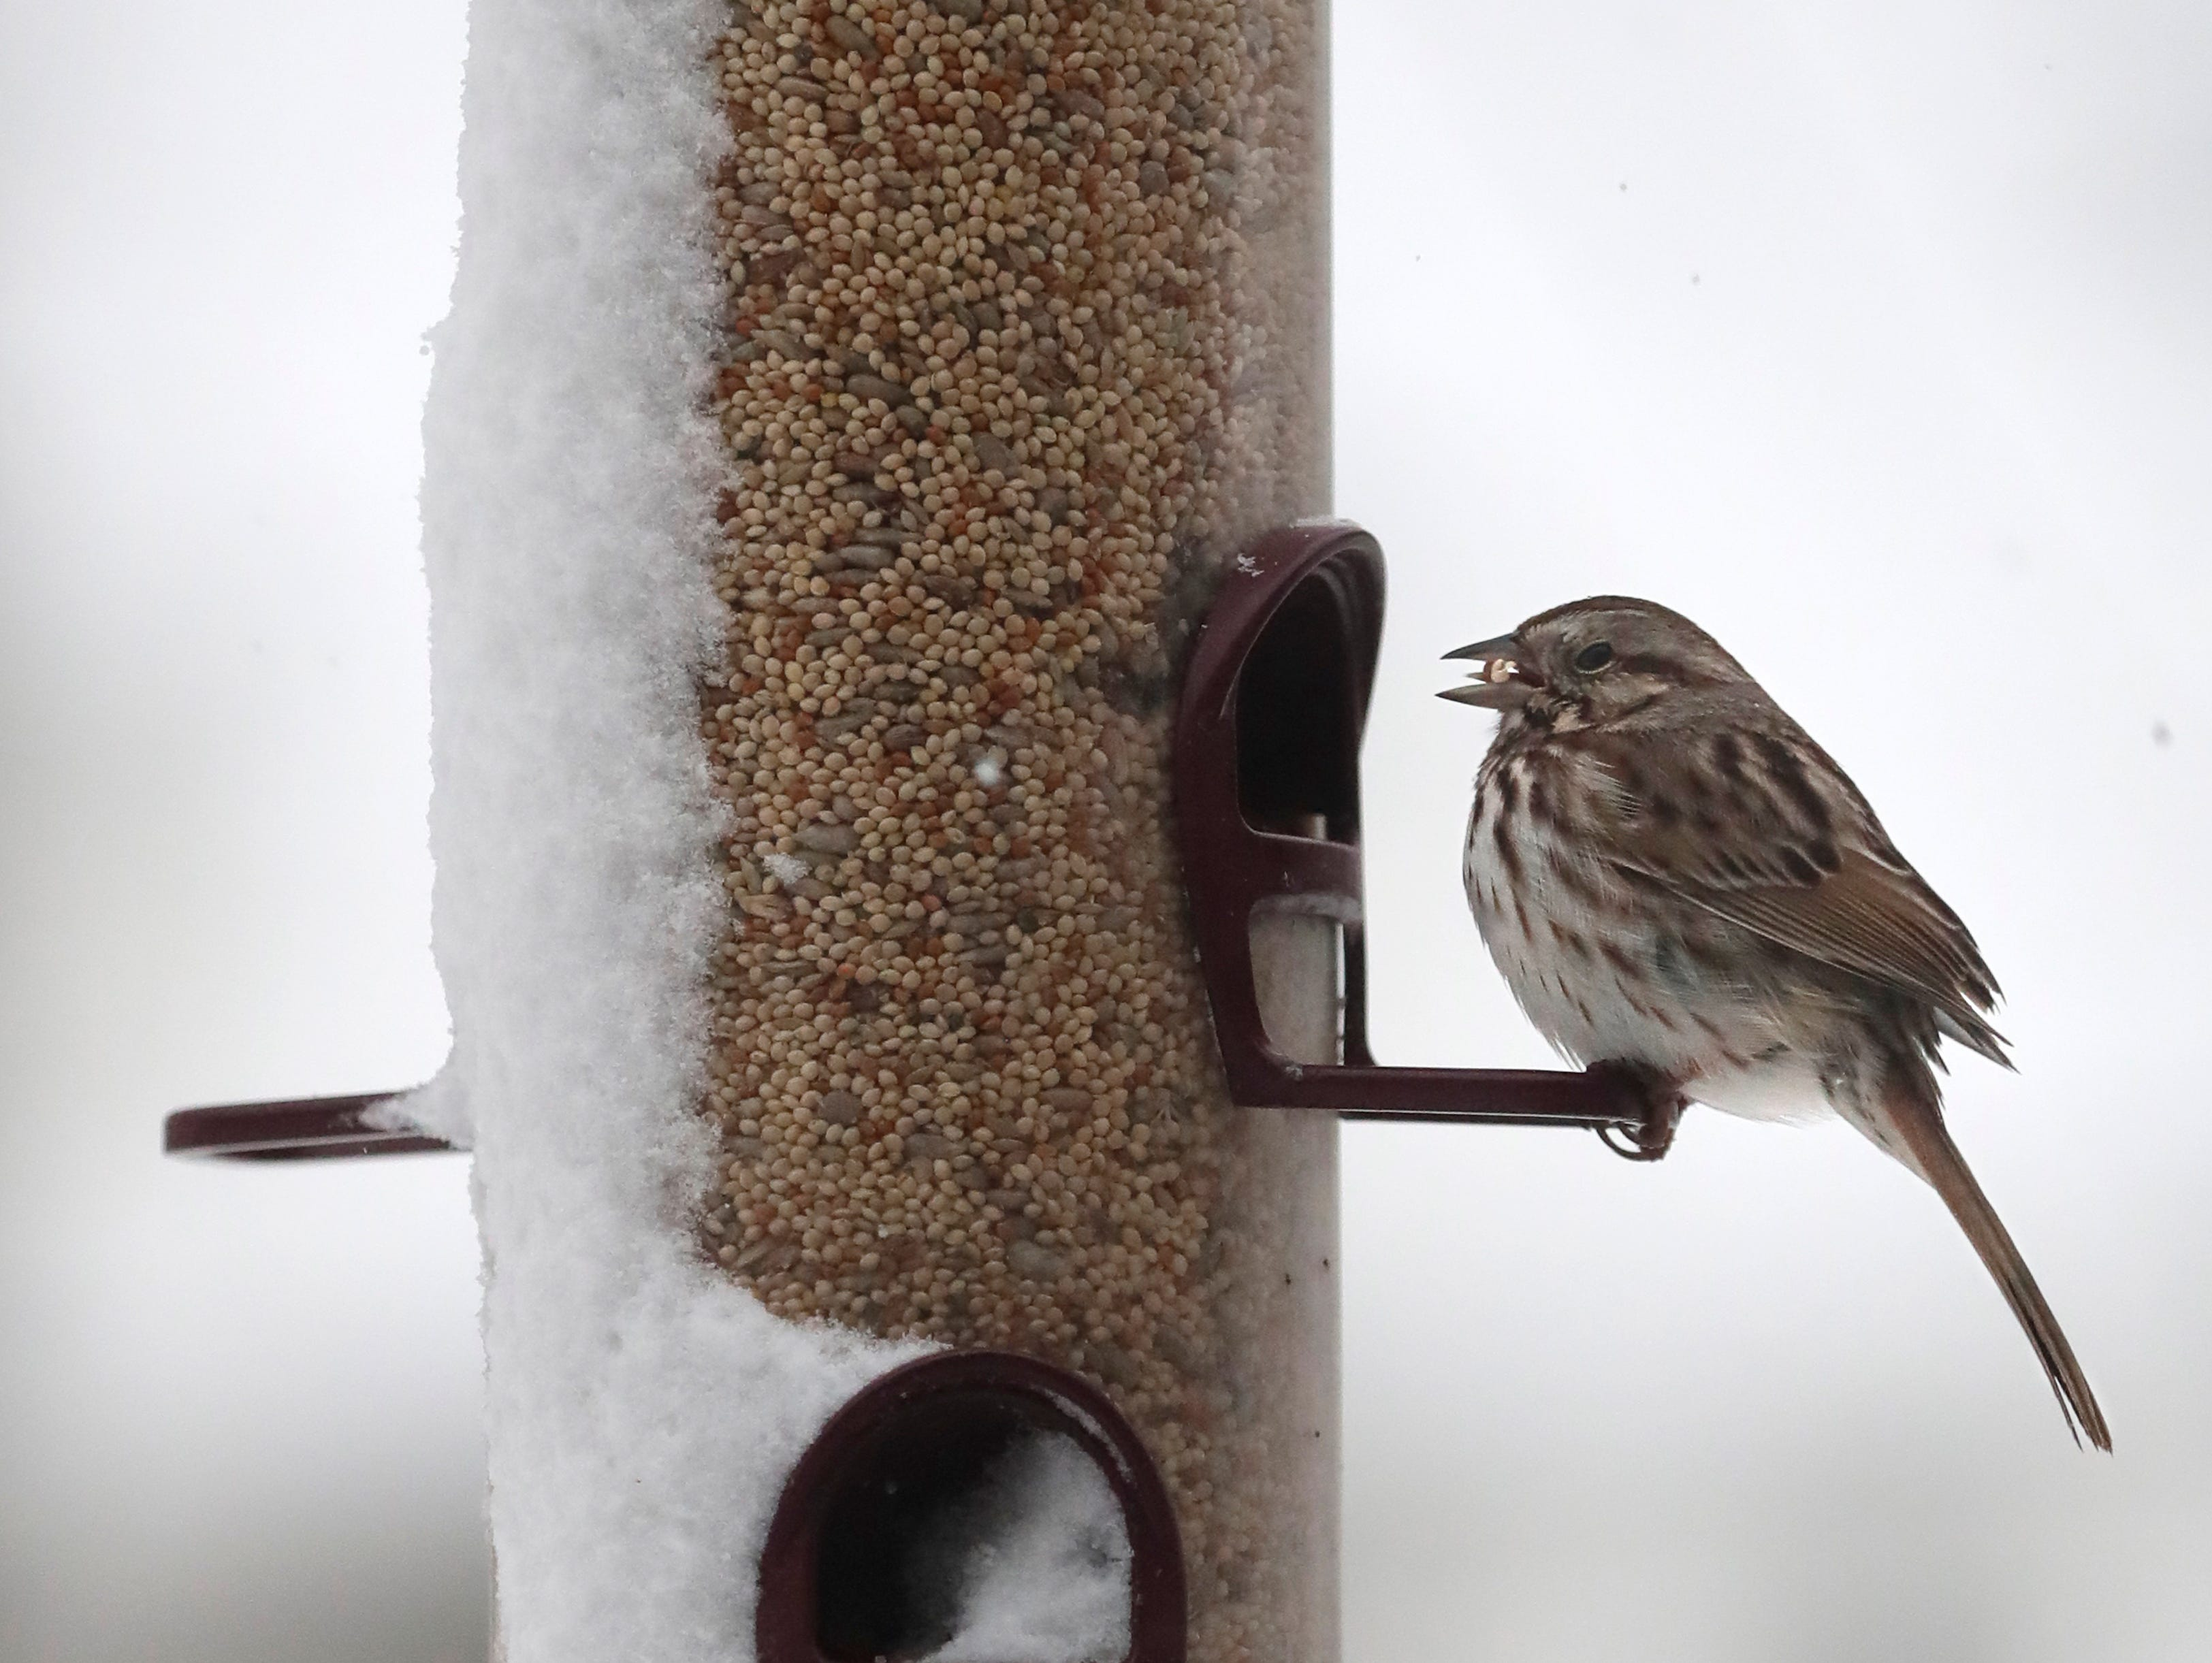 A bird eats from a snow covered bird feeder during a spring snow storm Thursday, April 11, 2019, in Appleton, Wis. Dan Powers/USA TODAY NETWORK-Wisconsin